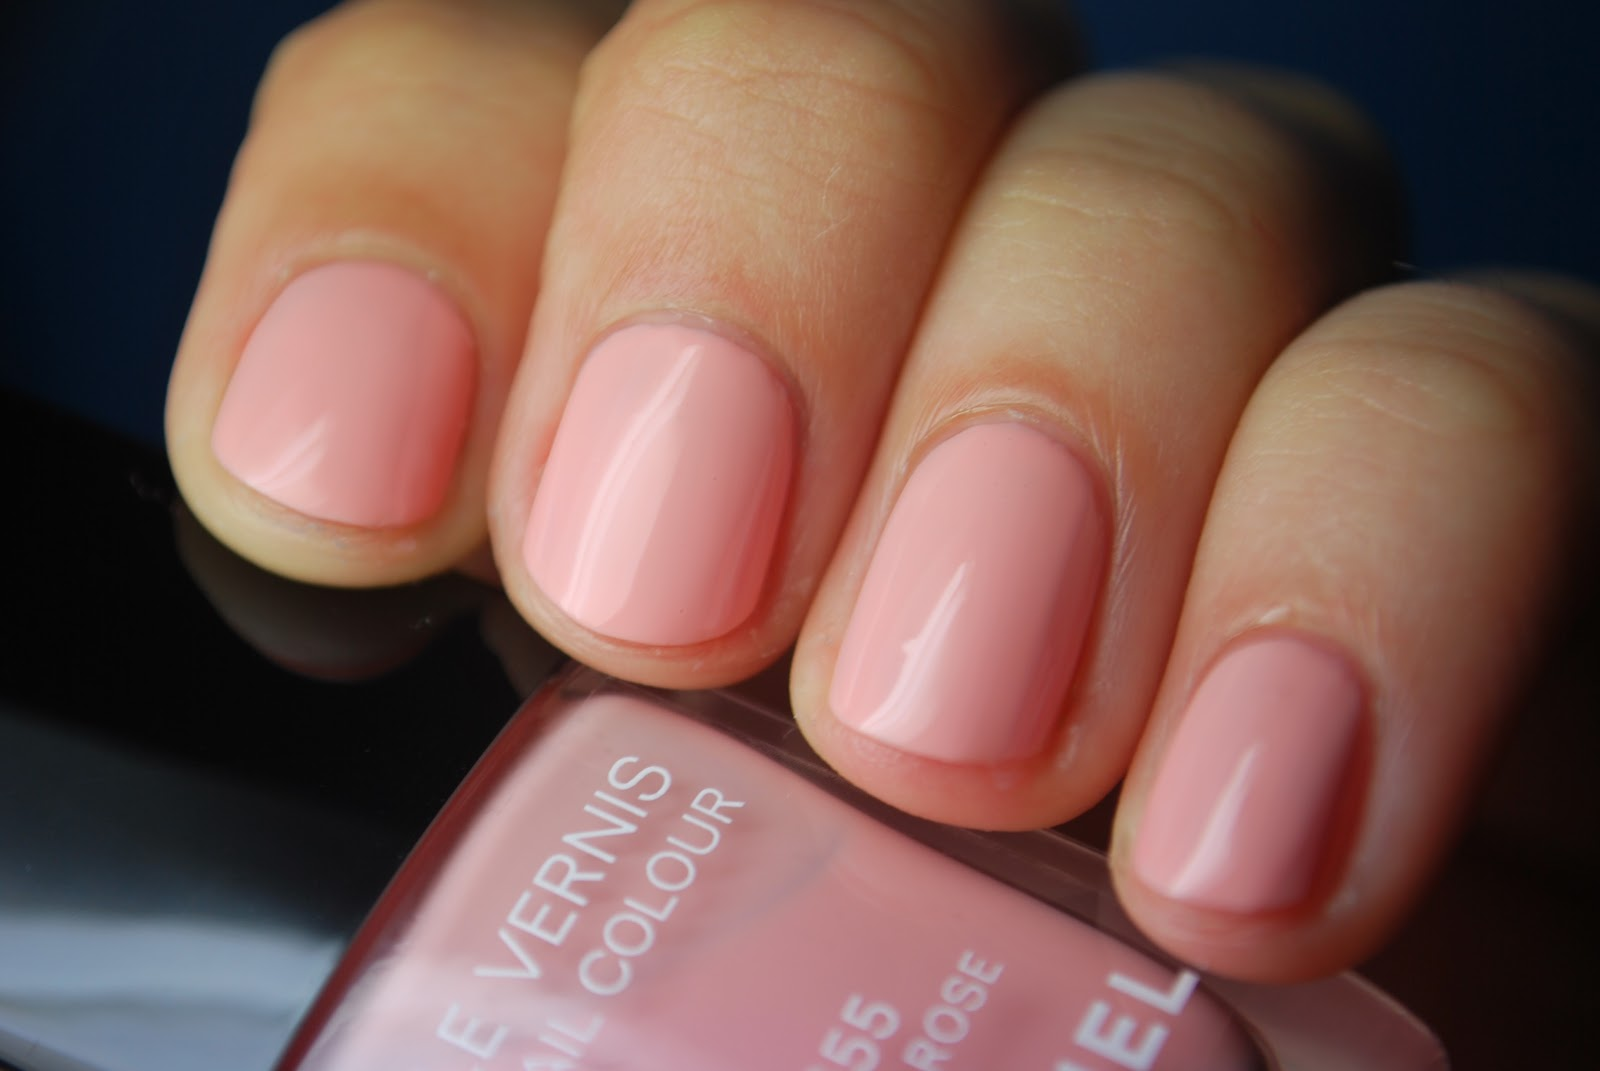 Saturday with Natalie: Summer Nails with Le Vernis from Chanel